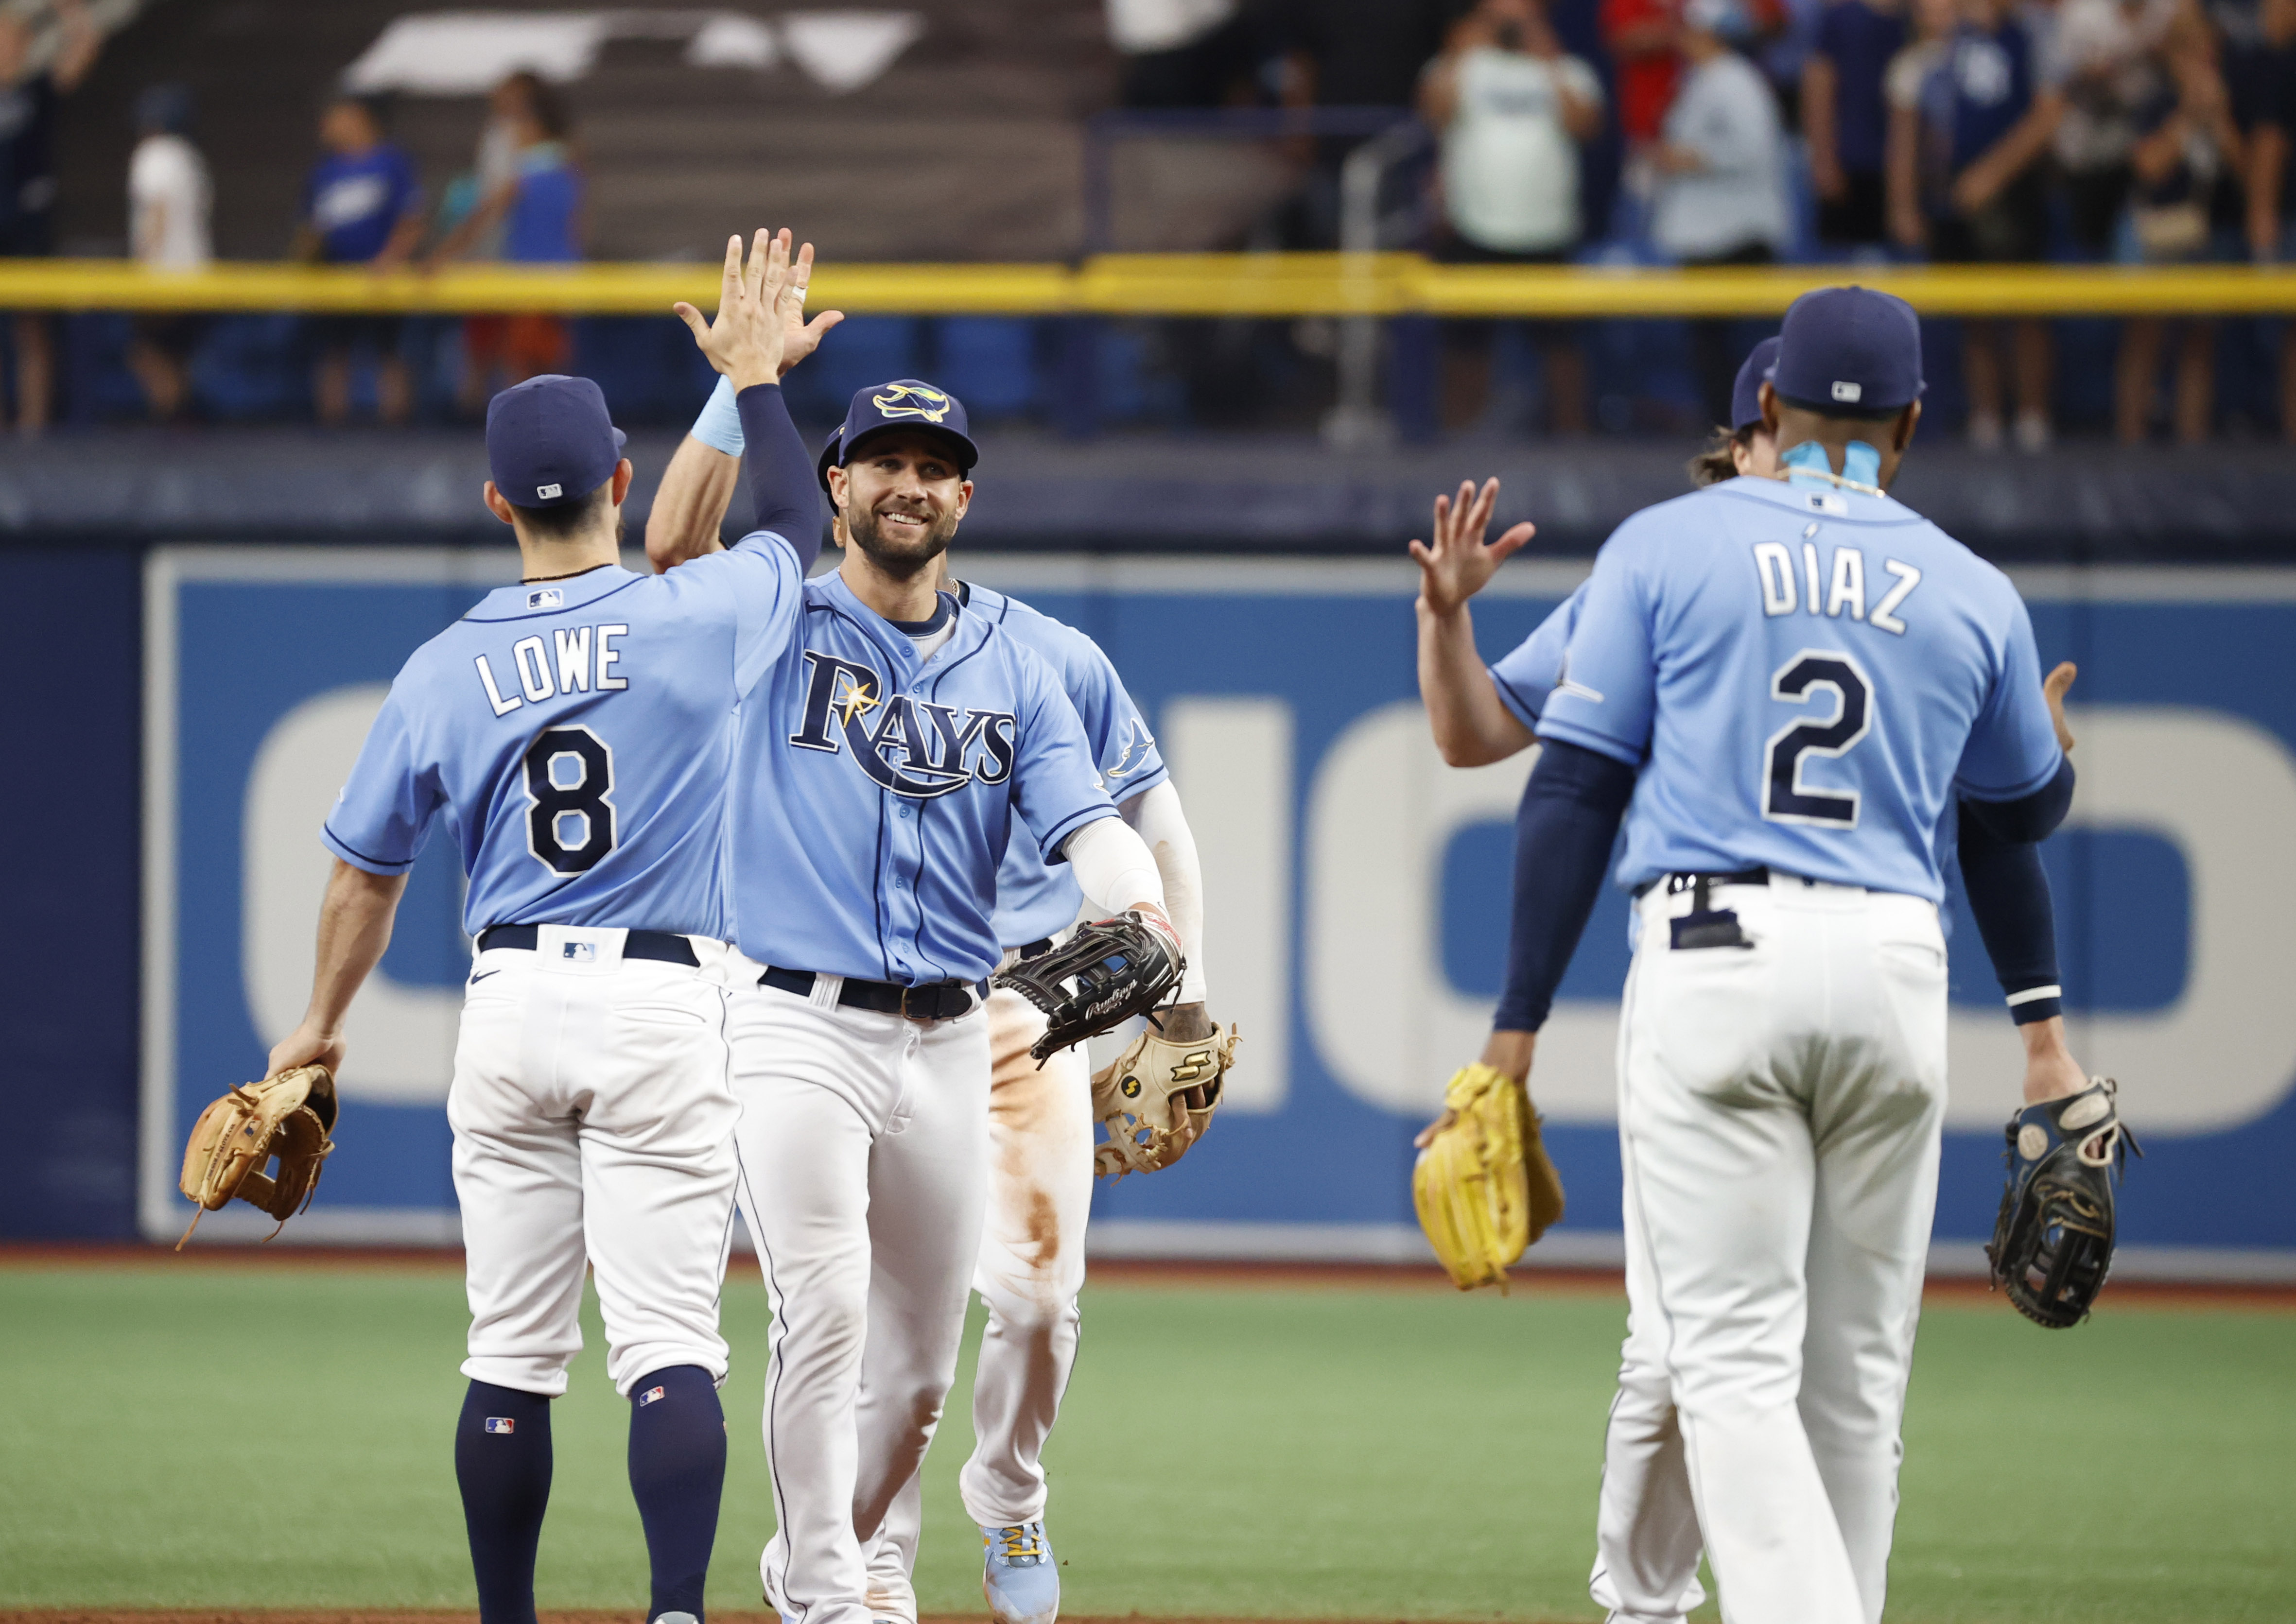 Aug 1, 2021; St. Petersburg, Florida, USA; Tampa Bay Rays center fielder Kevin Kiermaier (39) and second baseman Brandon Lowe (8) and teammates celebrate after defeating the Boston Red Sox at Tropicana Field. Mandatory Credit: Kim Klement-USA TODAY Sports